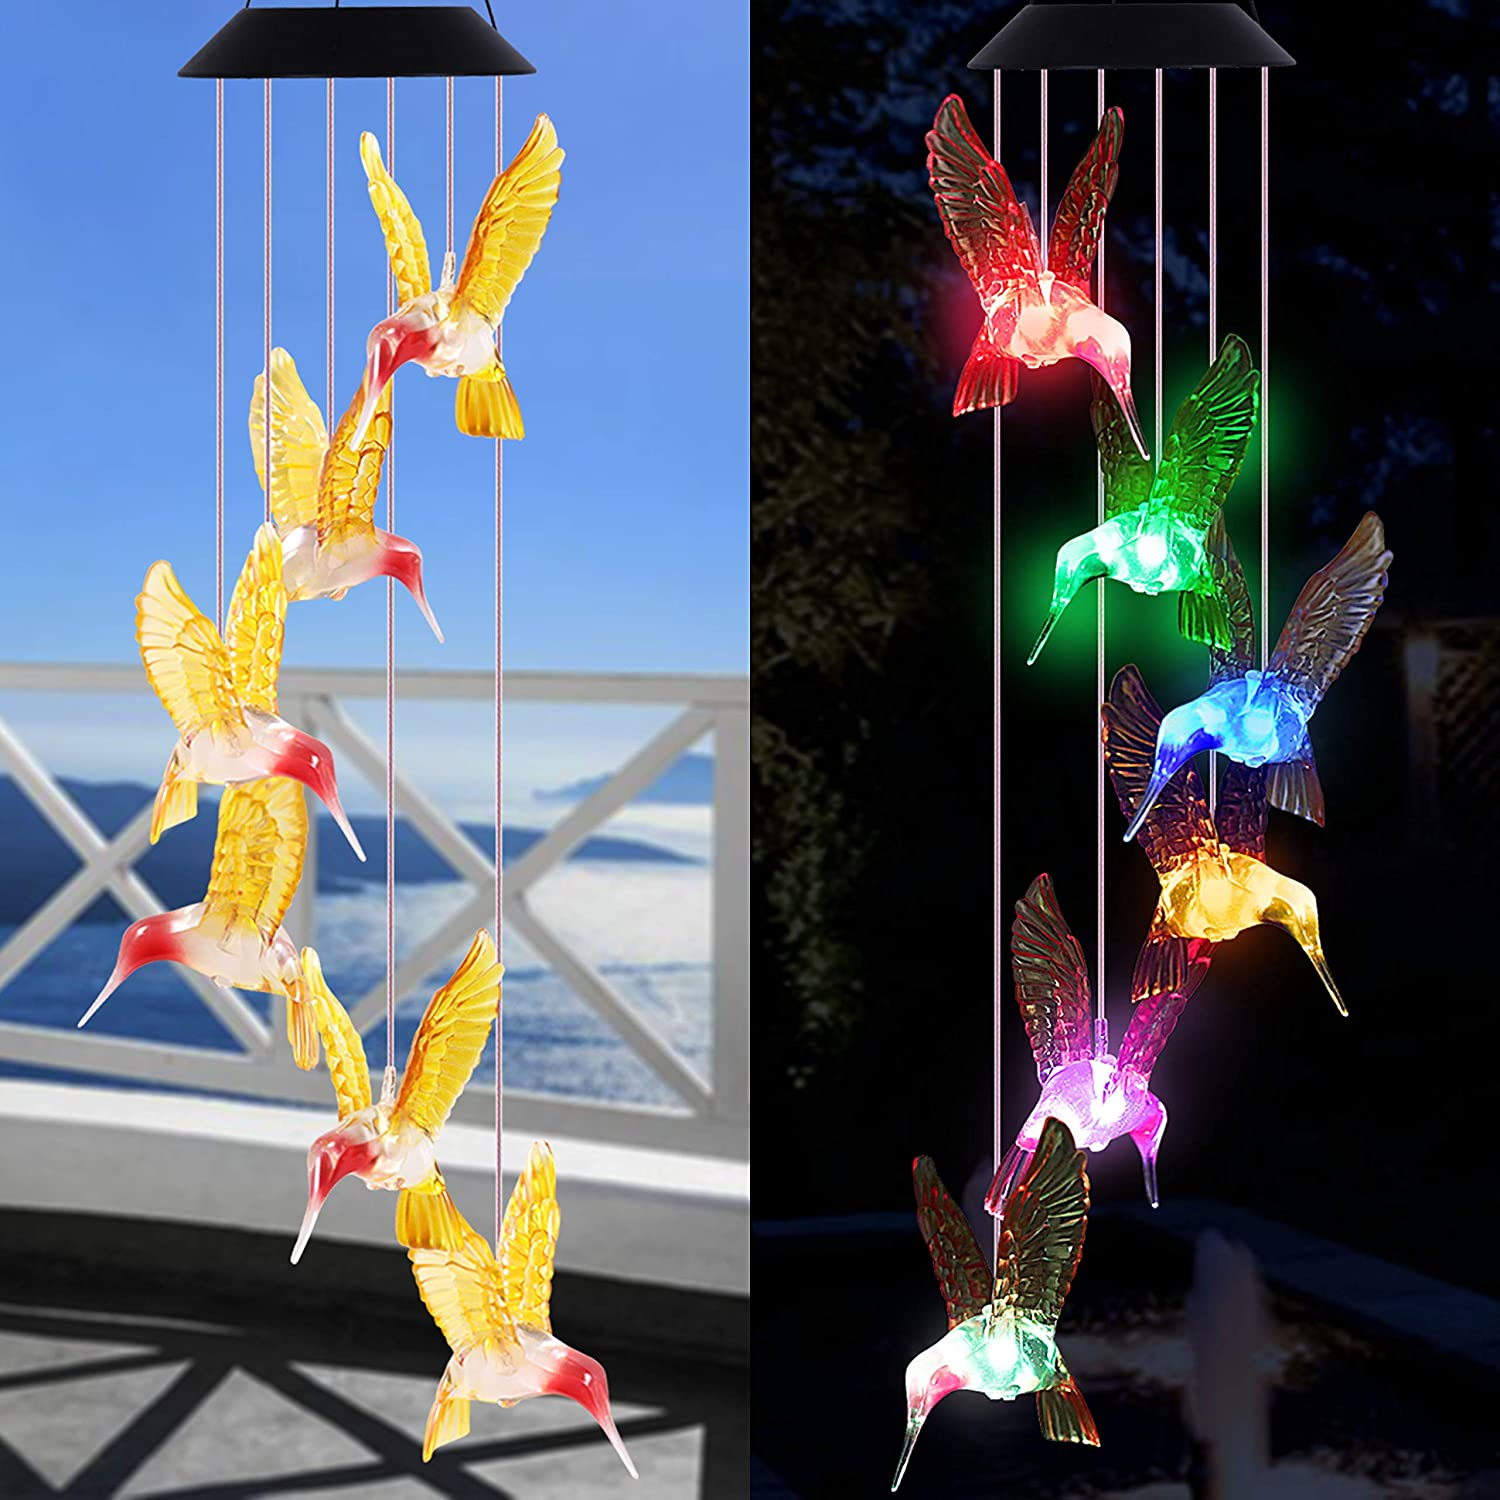 Solar Hummingbird Wind Chimes Outdoor Decor - Waterproof Solar Powered LED Changing Light Color Hummingbirds Mobile Romantic Wind Chime for Home, Patio, Festival, Garden Decoration, Xmas Gift for Mom